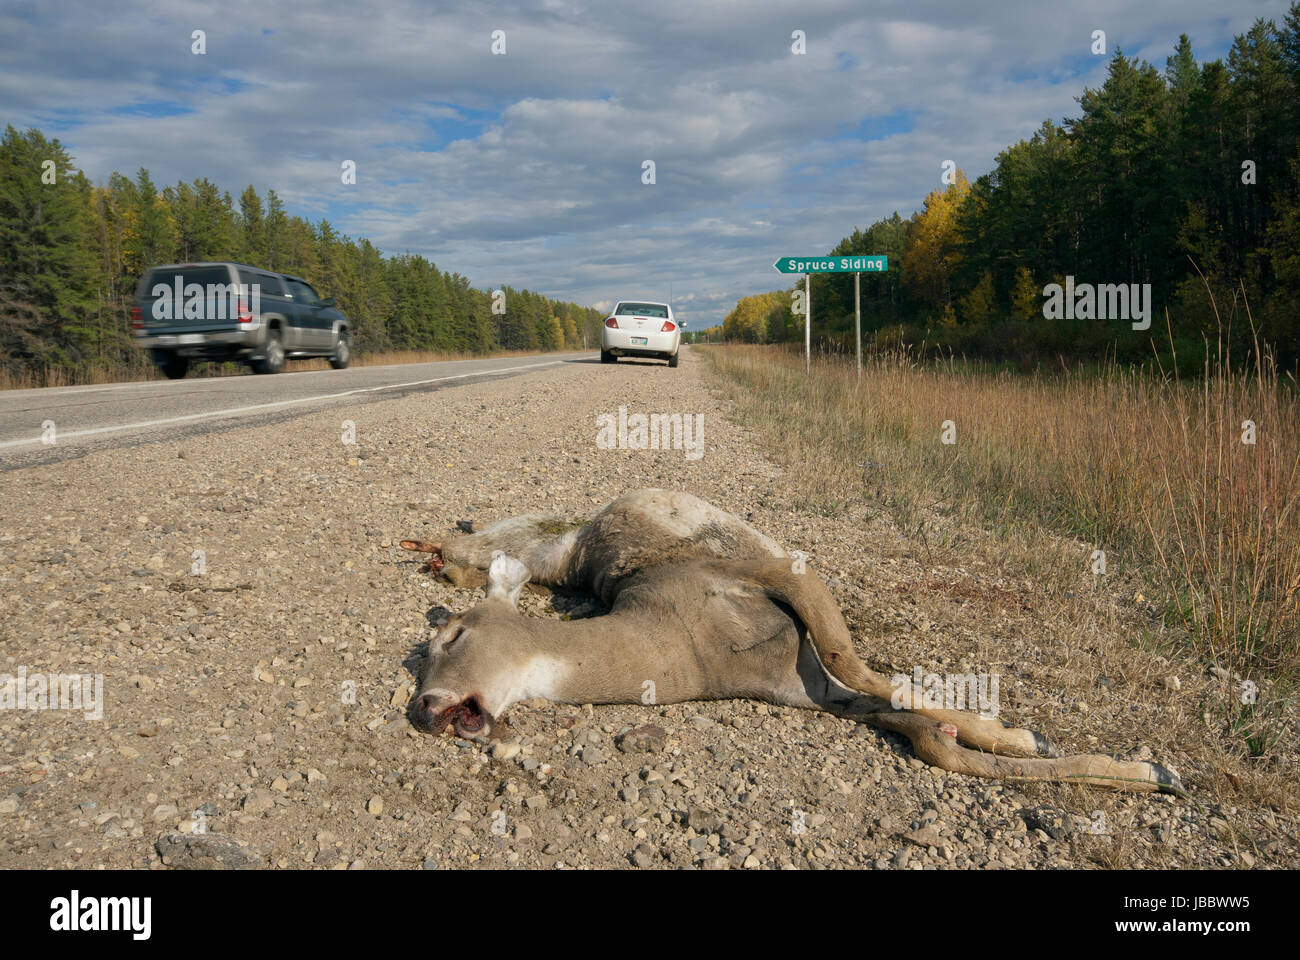 White tail deer (Odocoileus virginianus) killed on the road, Manitoba, Canada - Stock Image